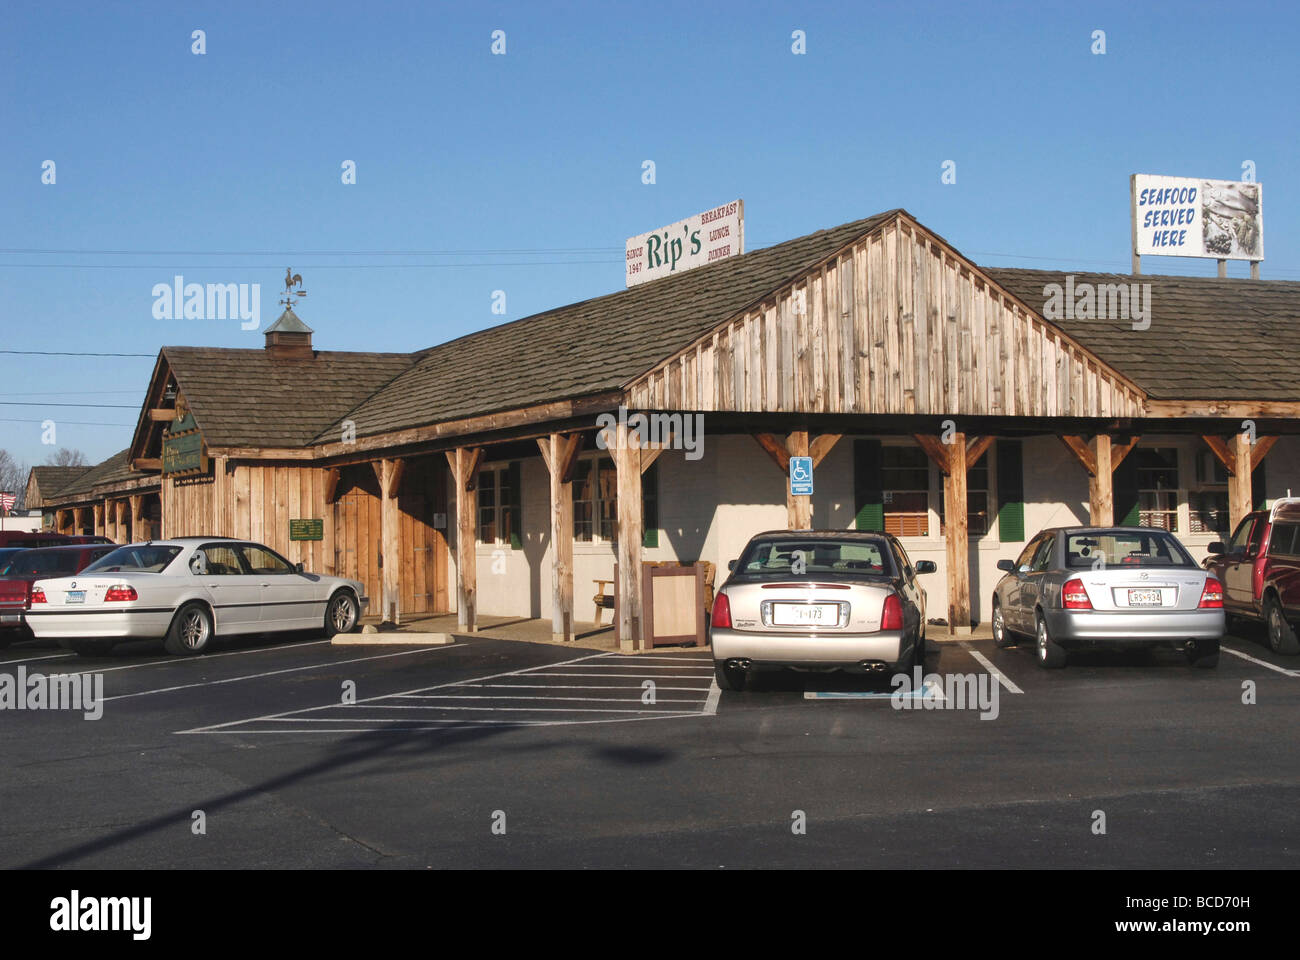 Rips Restaurant In Bowie Md Stock Photo 24877121 Alamy